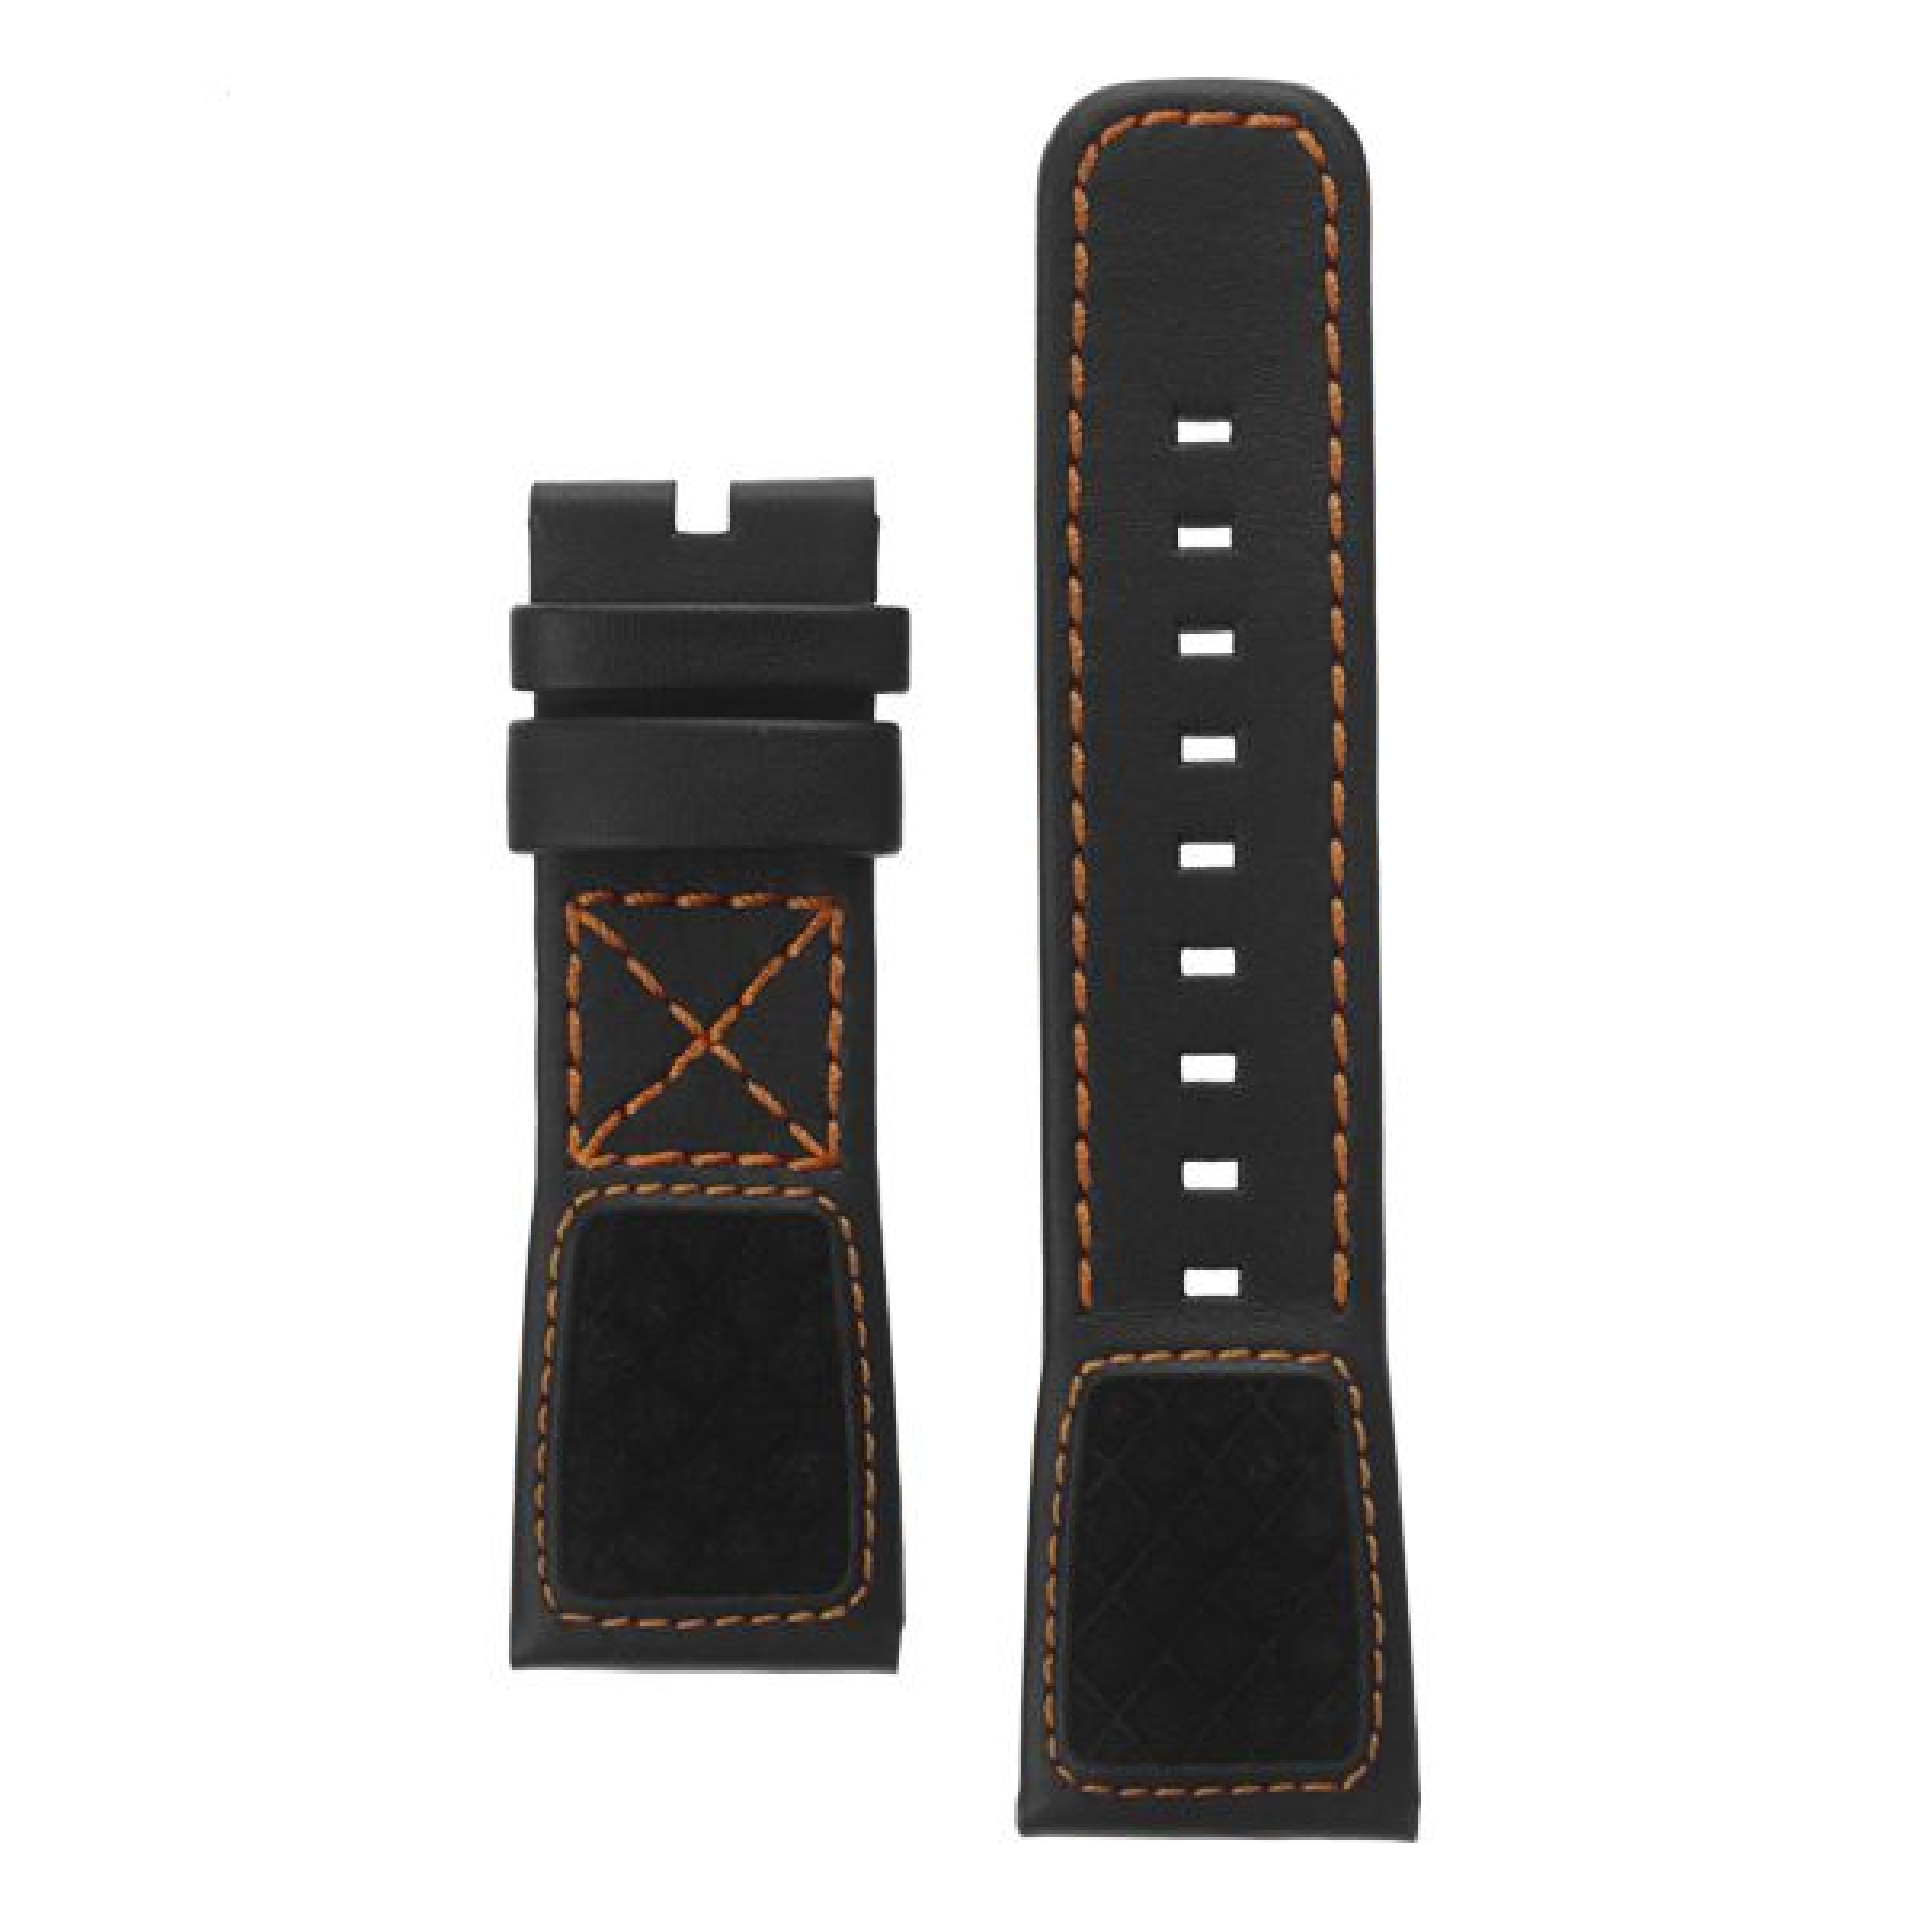 Leather strap black, orange stitching, special padding